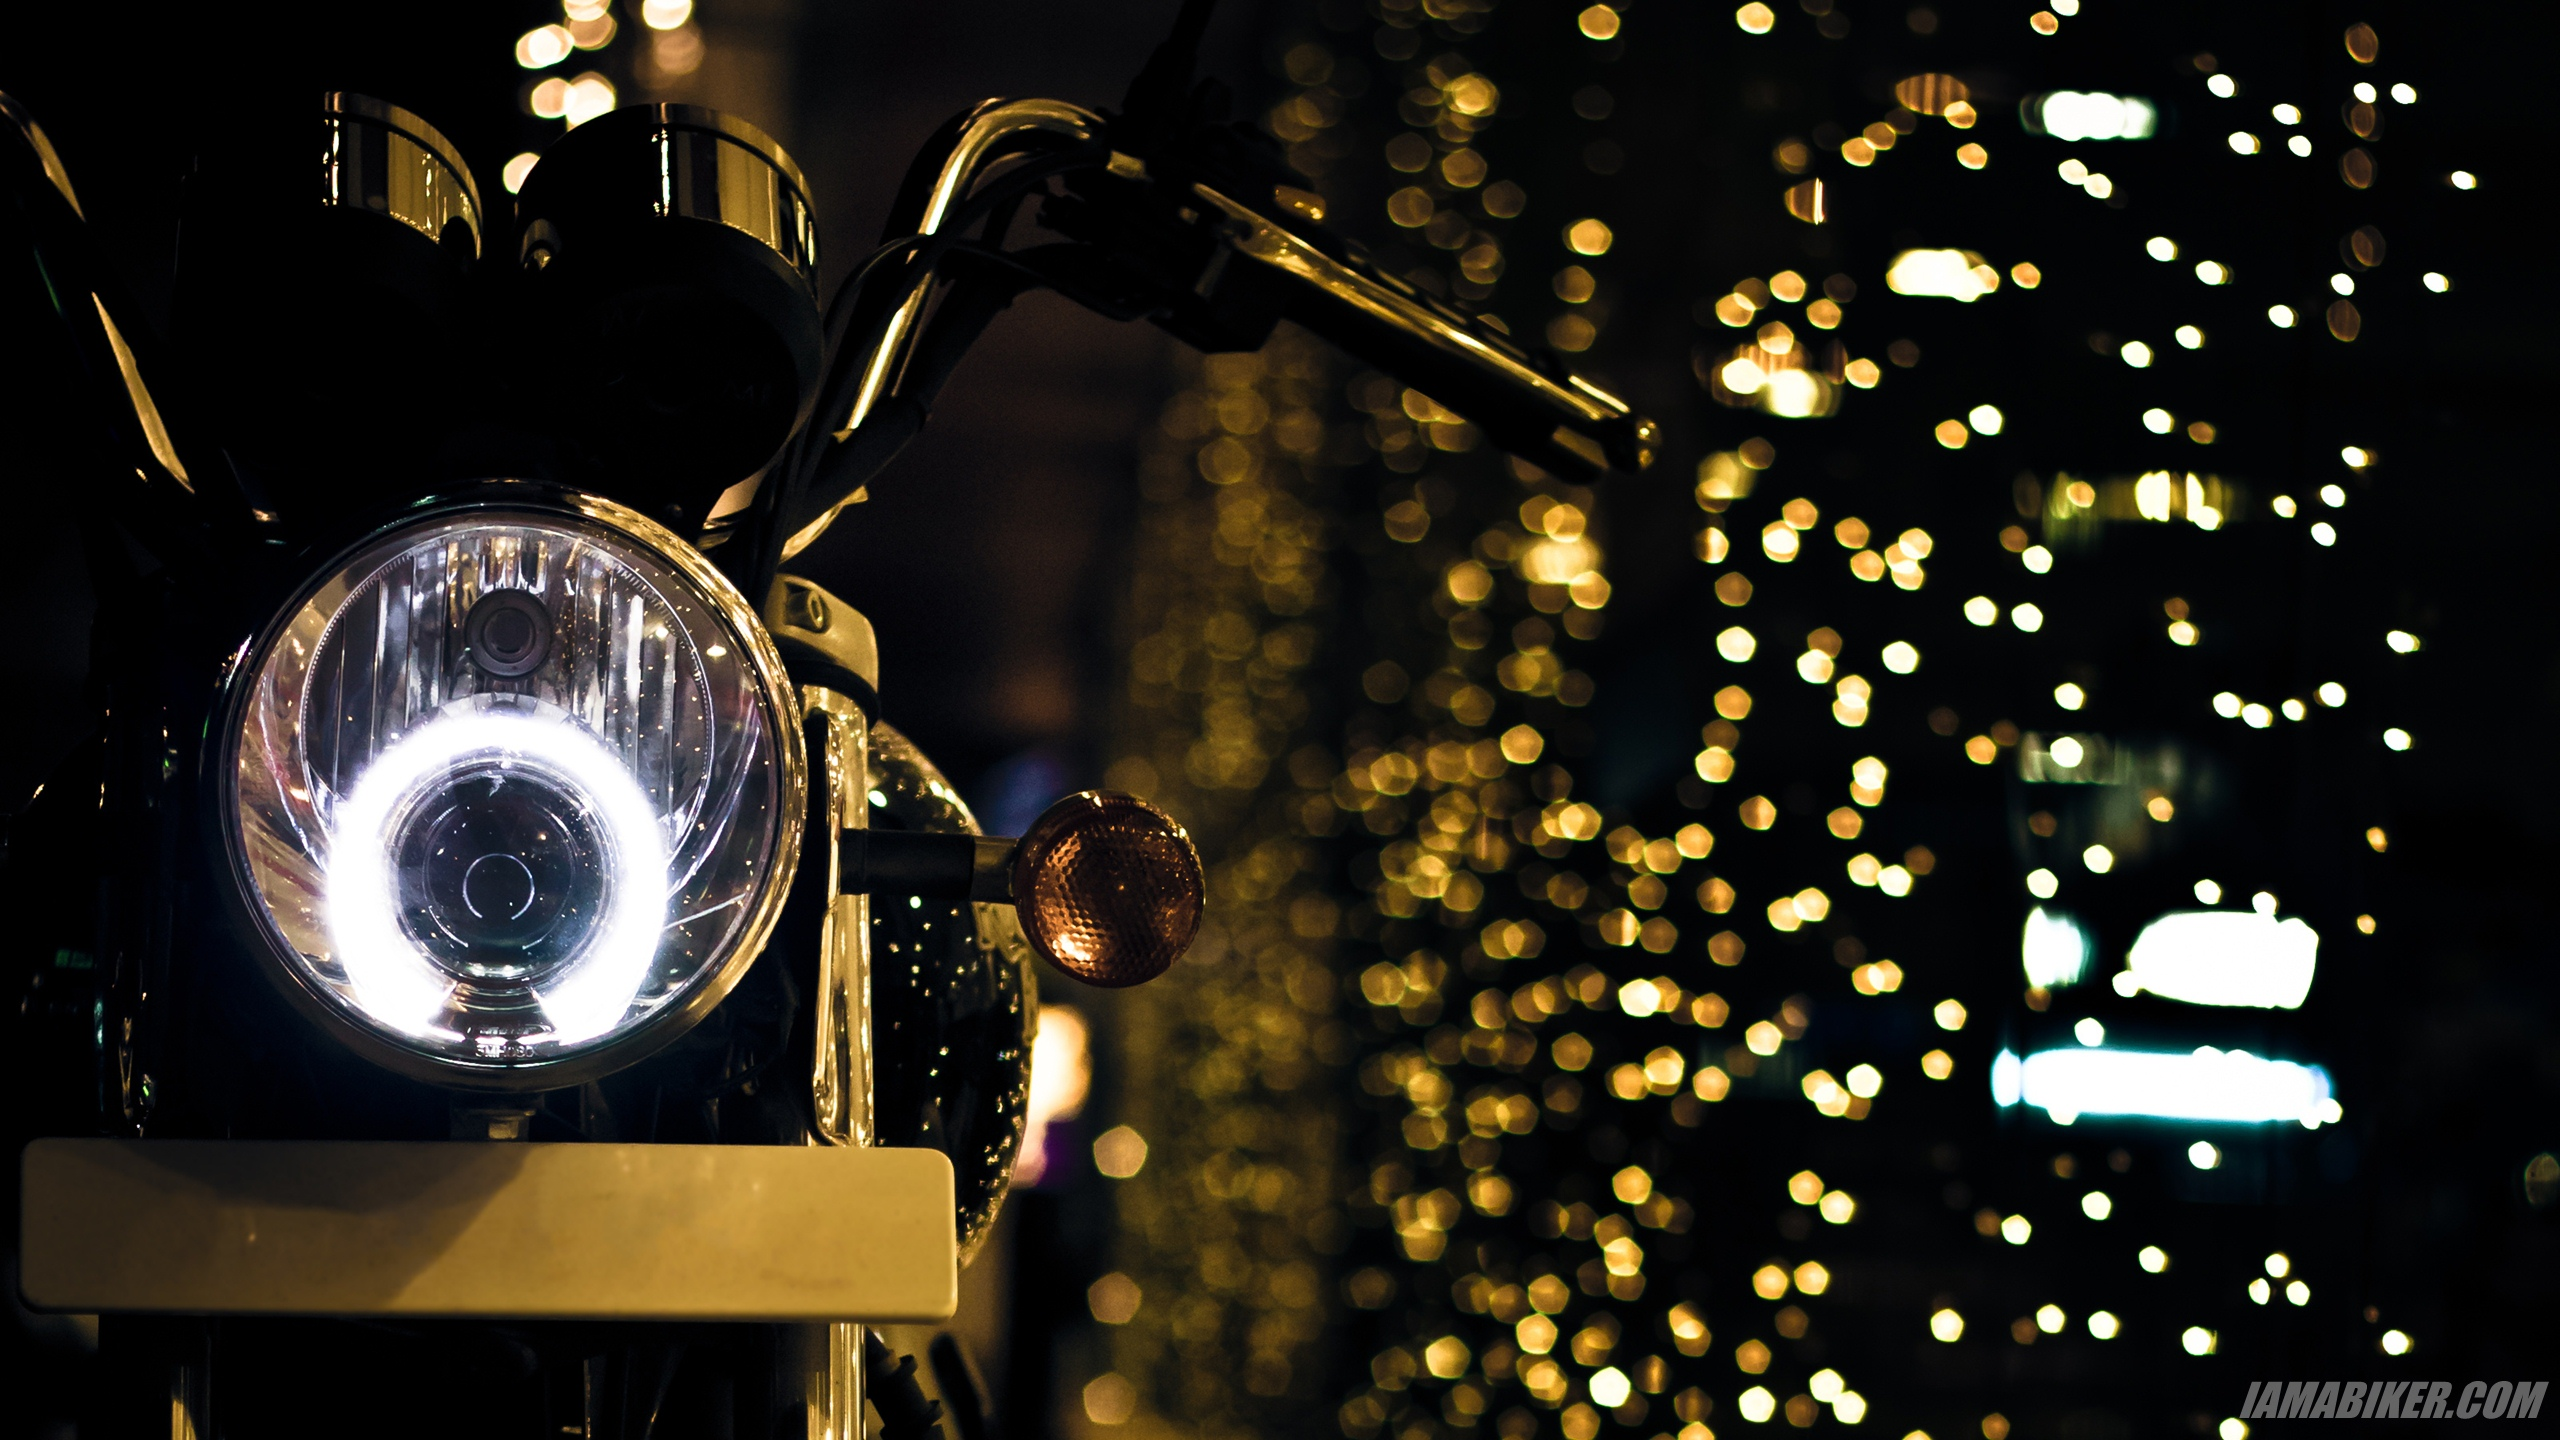 Hd wallpaper royal enfield - Download 16 9download